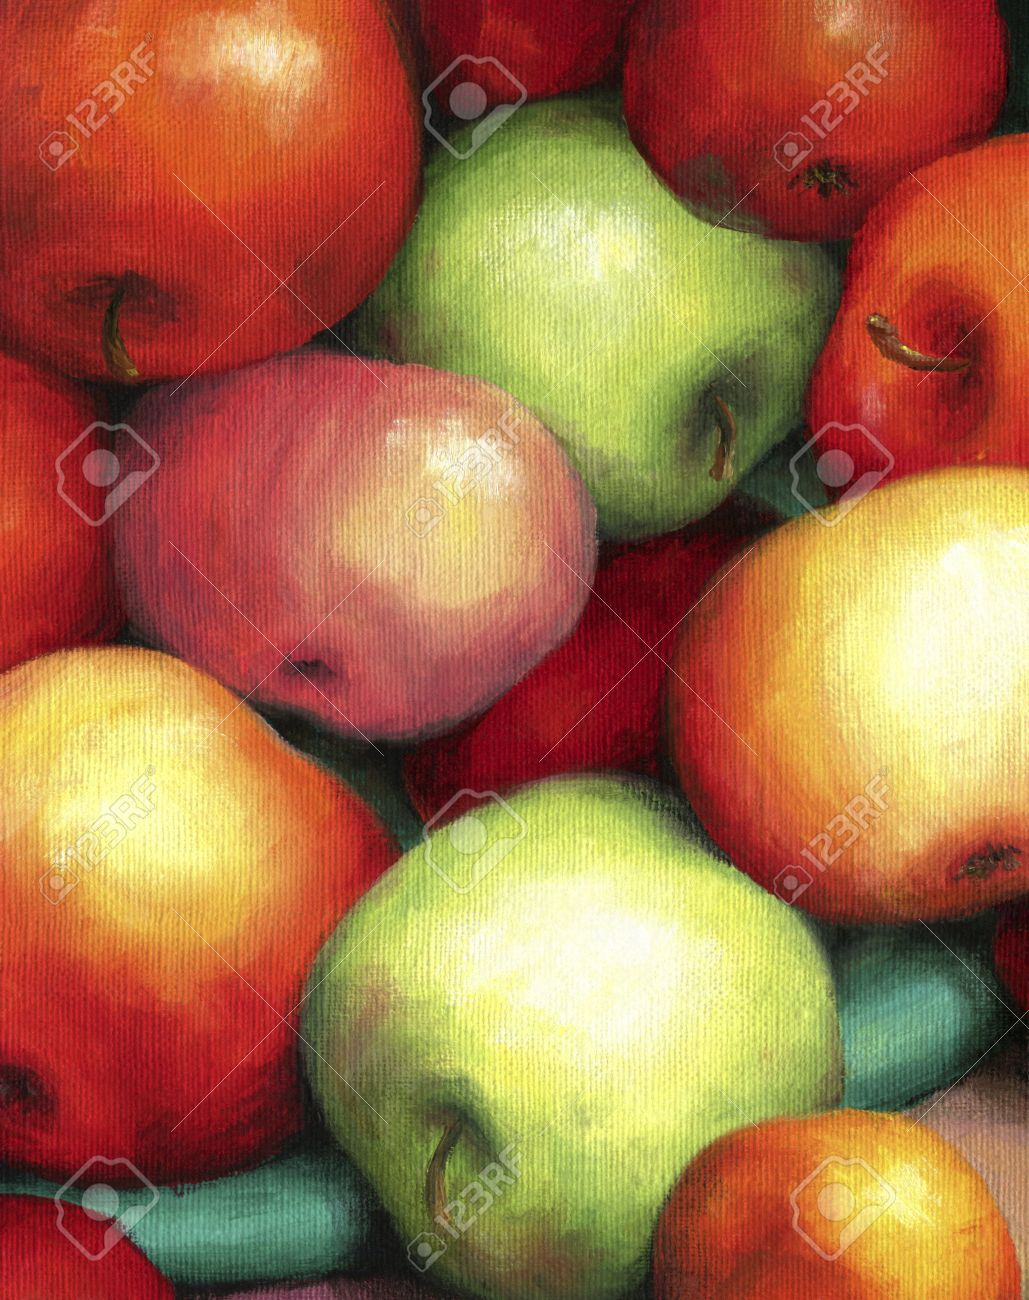 Rich harvest of ripe, juicy and tasty apples. Red and green apples are shown in oil on canvas. - 42076567